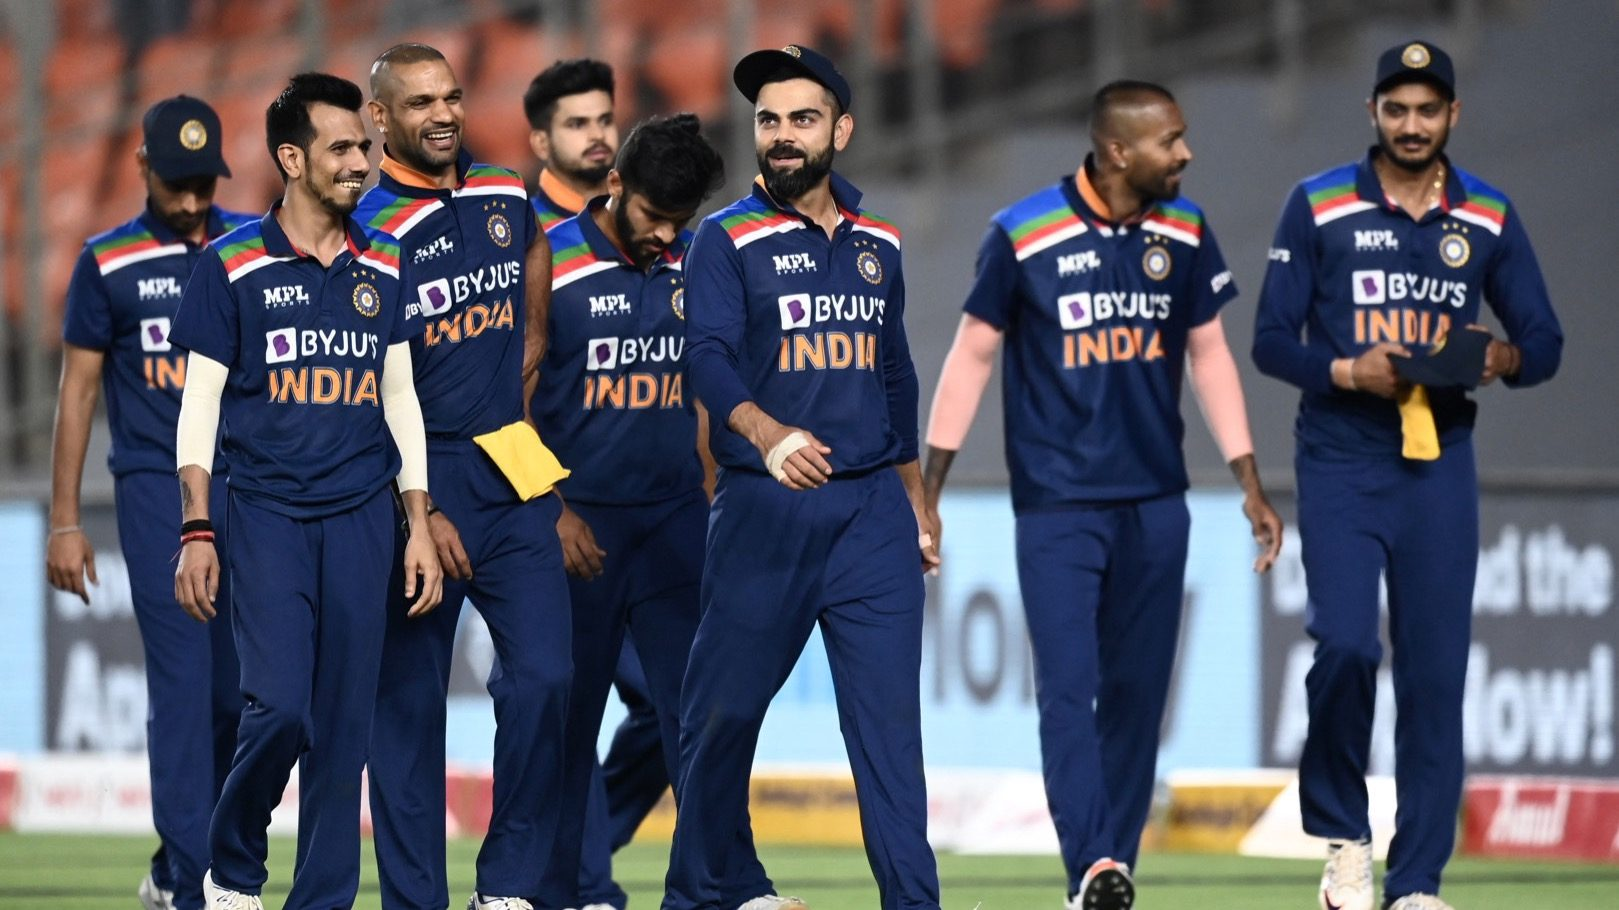 Indian cricket team schedule for 2021: Mark your calendars